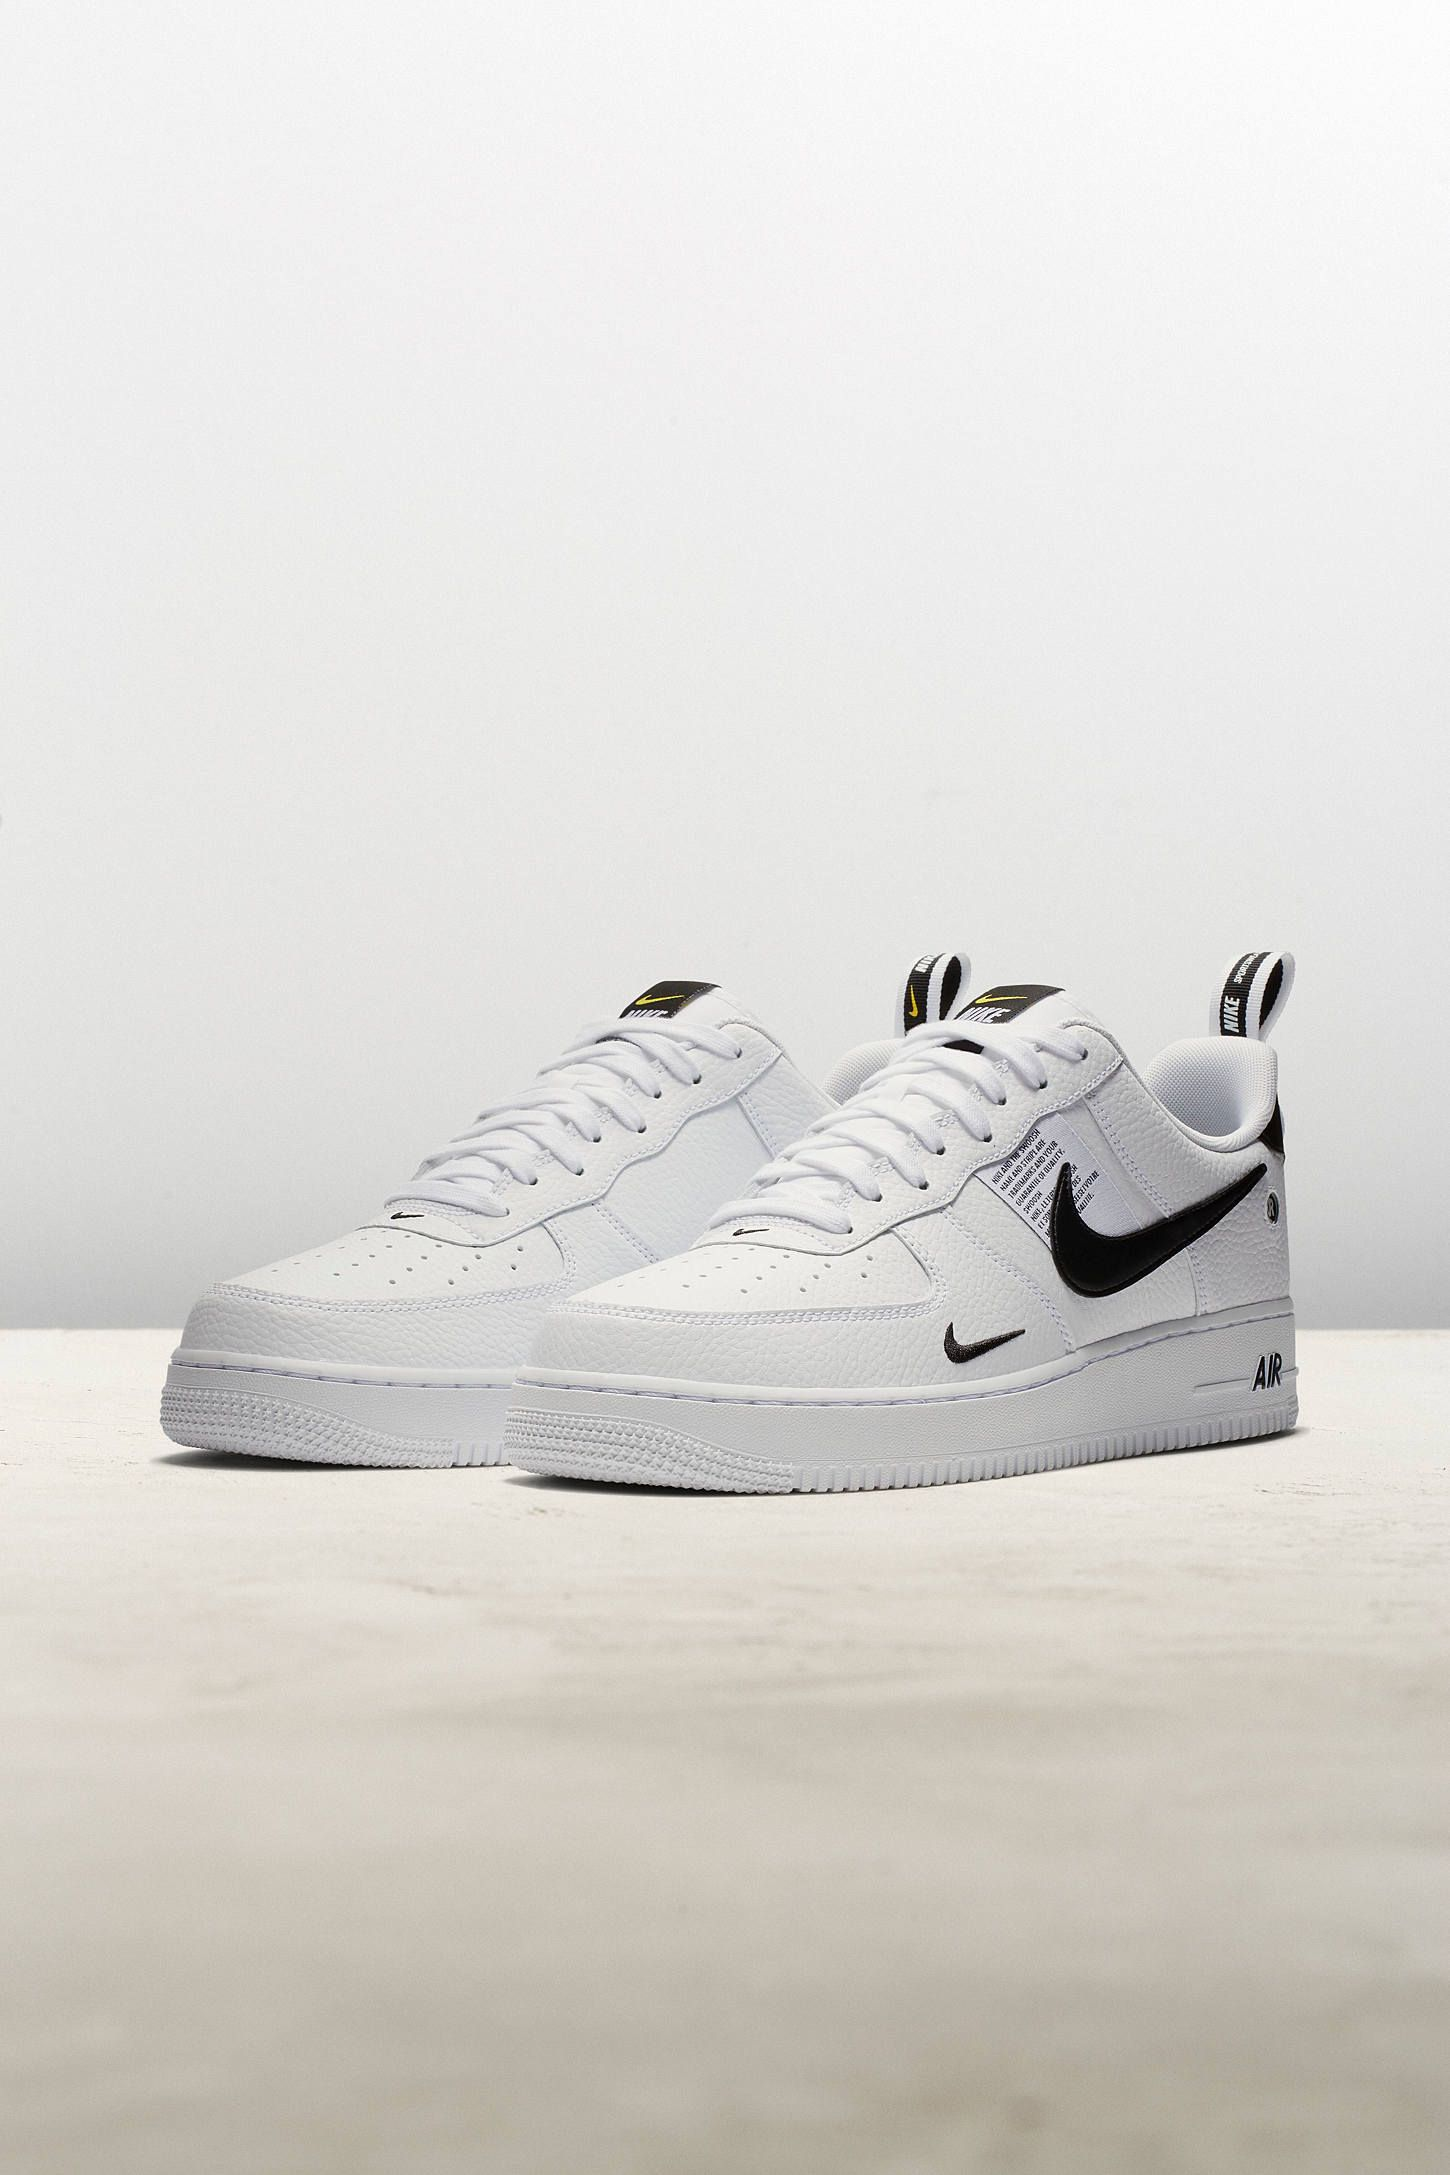 961e83d536f2 Nike Air Force 1 '07 LV8 Utility Sneaker | Tags: sneakers, low tops, white  leather